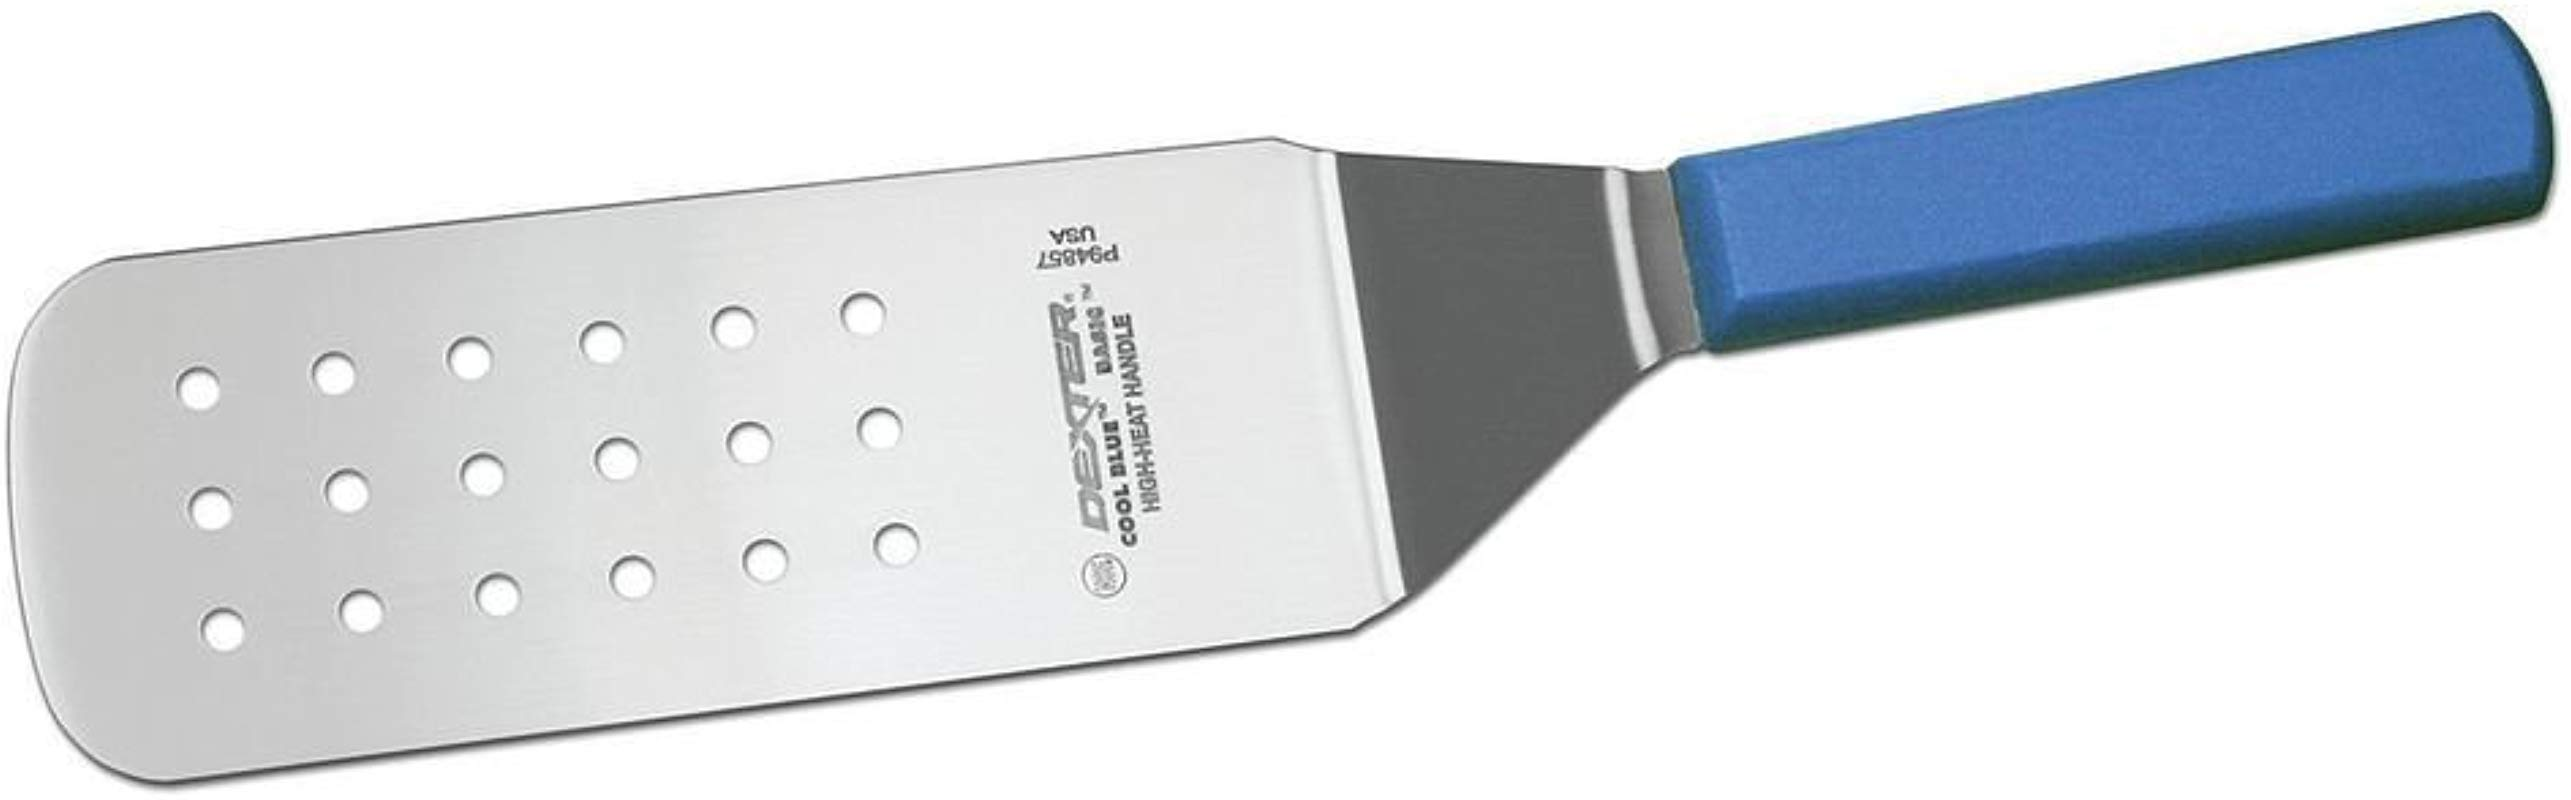 Dexter Cool Blue Basics Stainless Steel Perforated Turner With Blue Polypropylene Handle 8 L X 3 W Blade